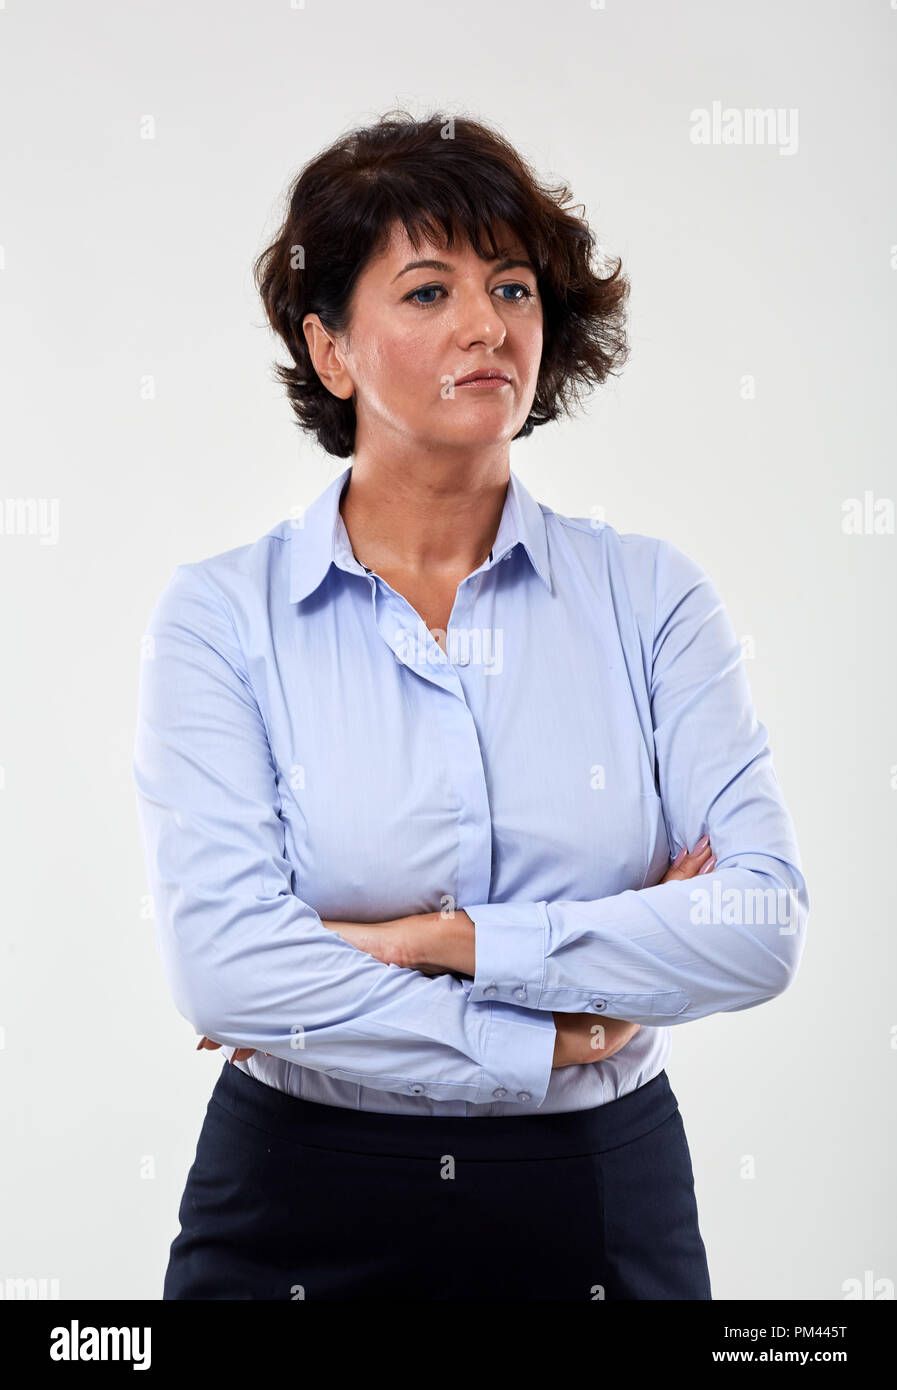 Portrait of a mature businesswoman with an expression of distrust - Stock Image